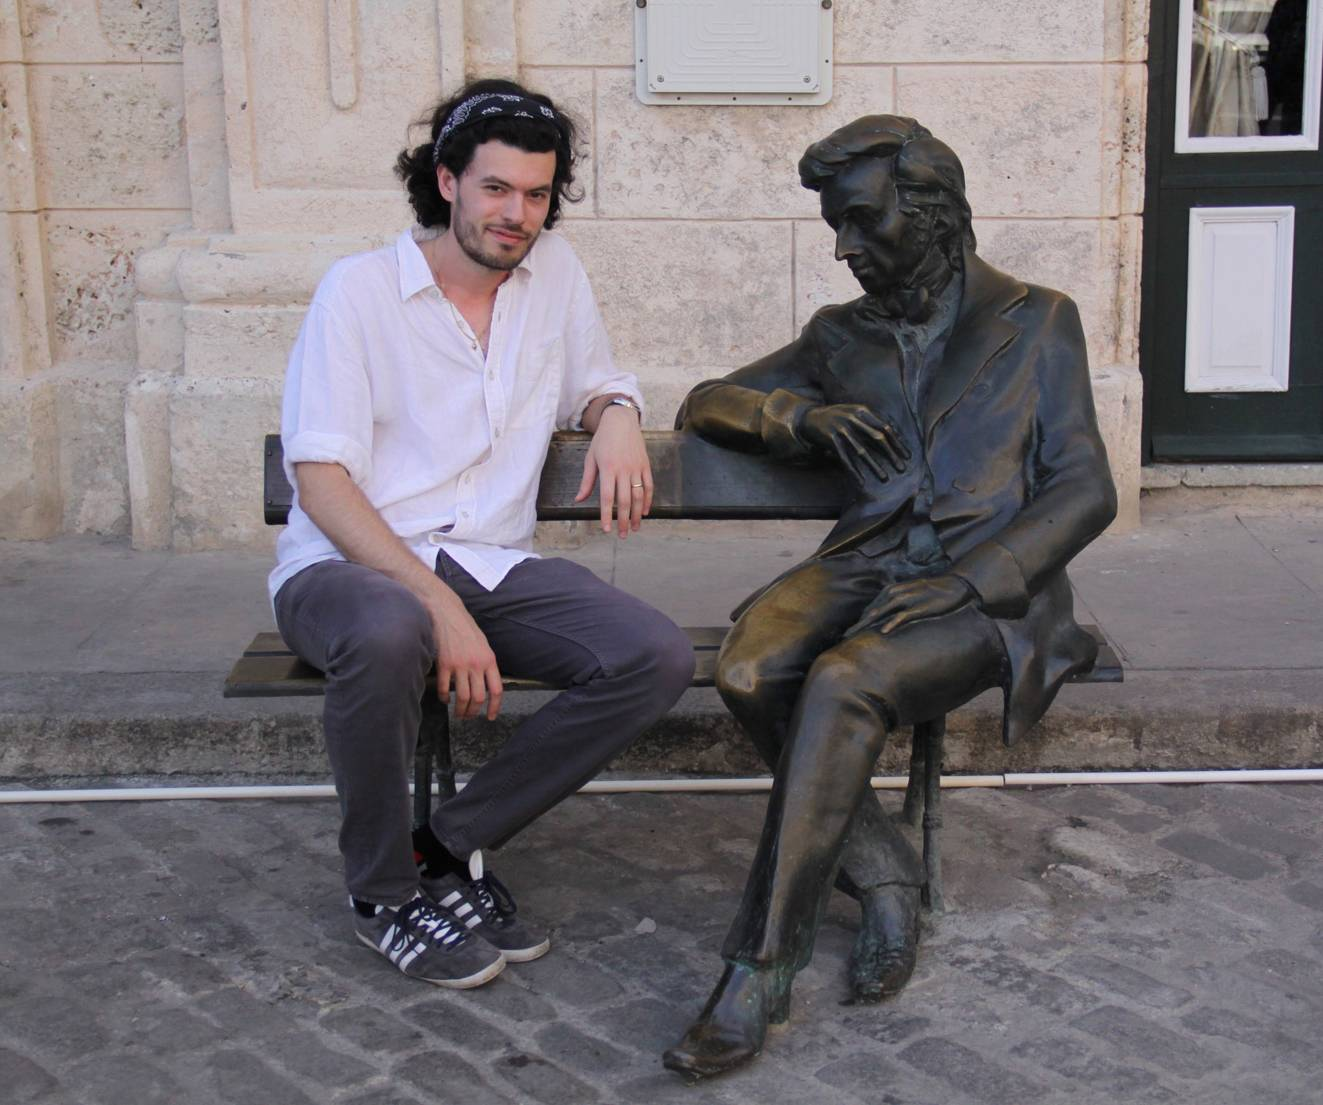 A statue of Chopin in Cuba and I